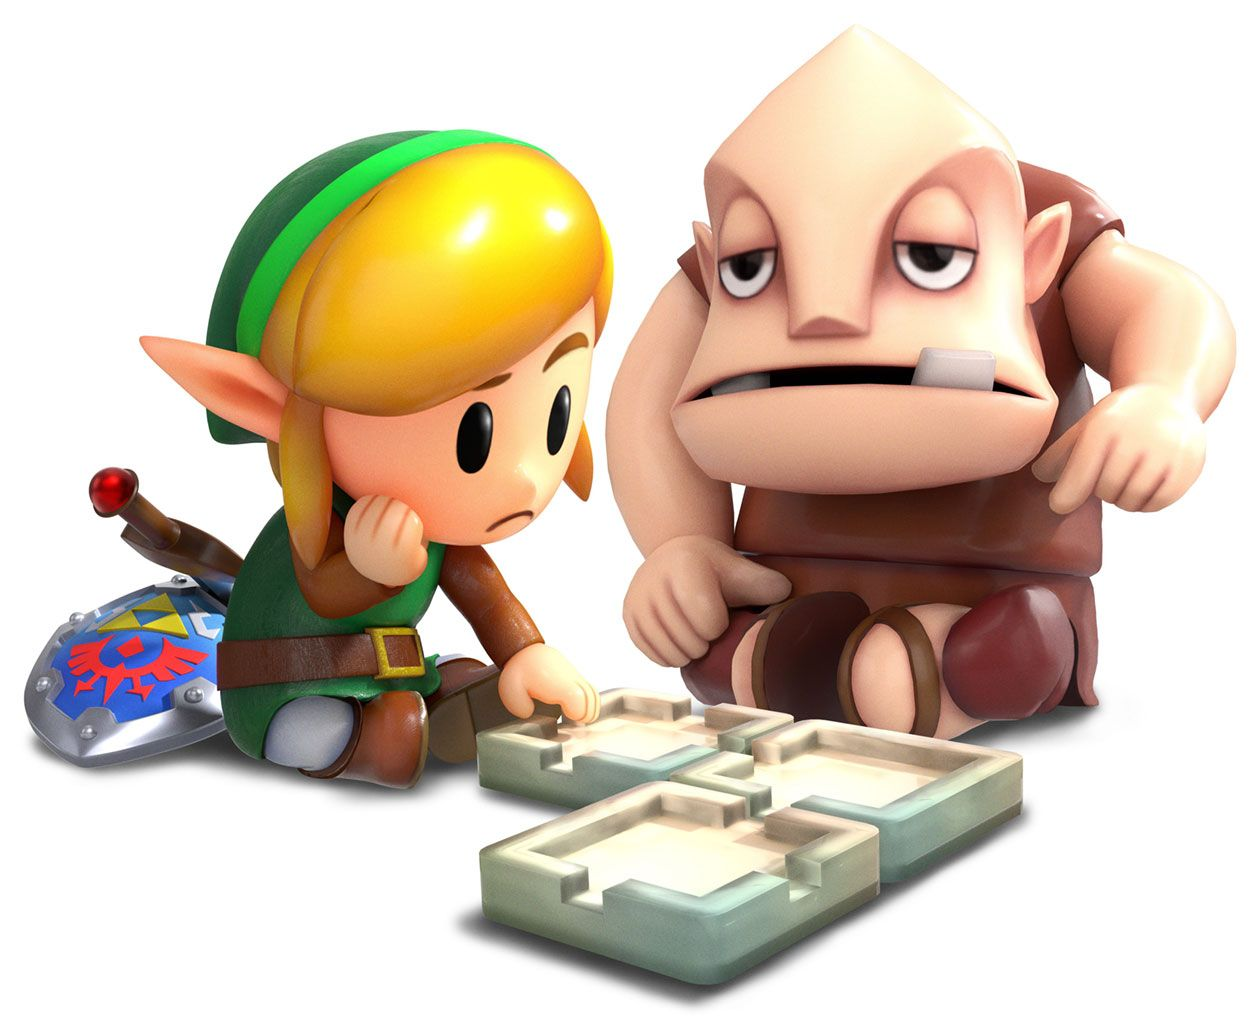 Zelda Link S Awakening Switch Guide How To Find Dampe And